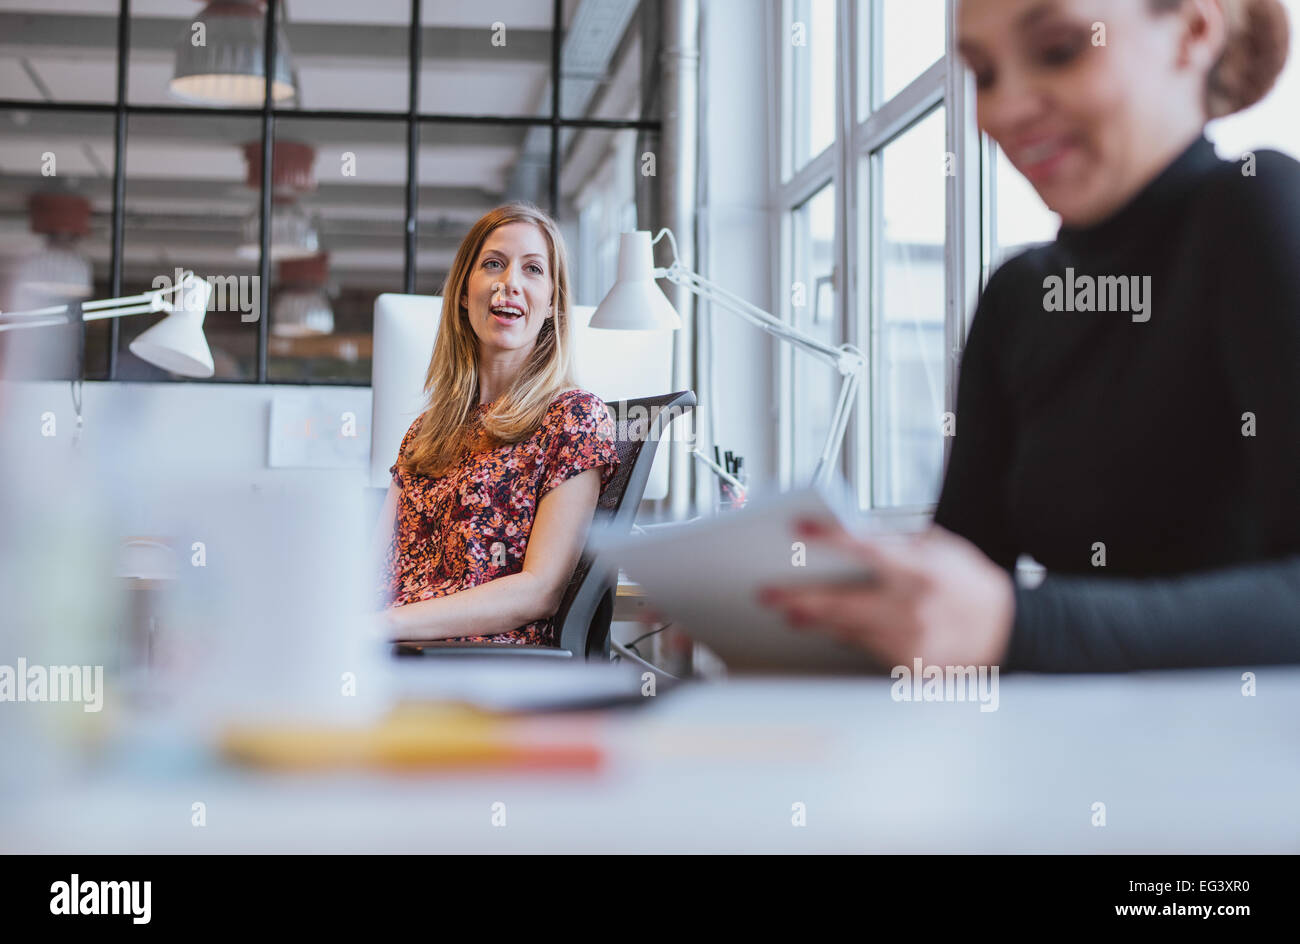 Happy young woman having a friendly chat with her female colleague while at work - Stock Image